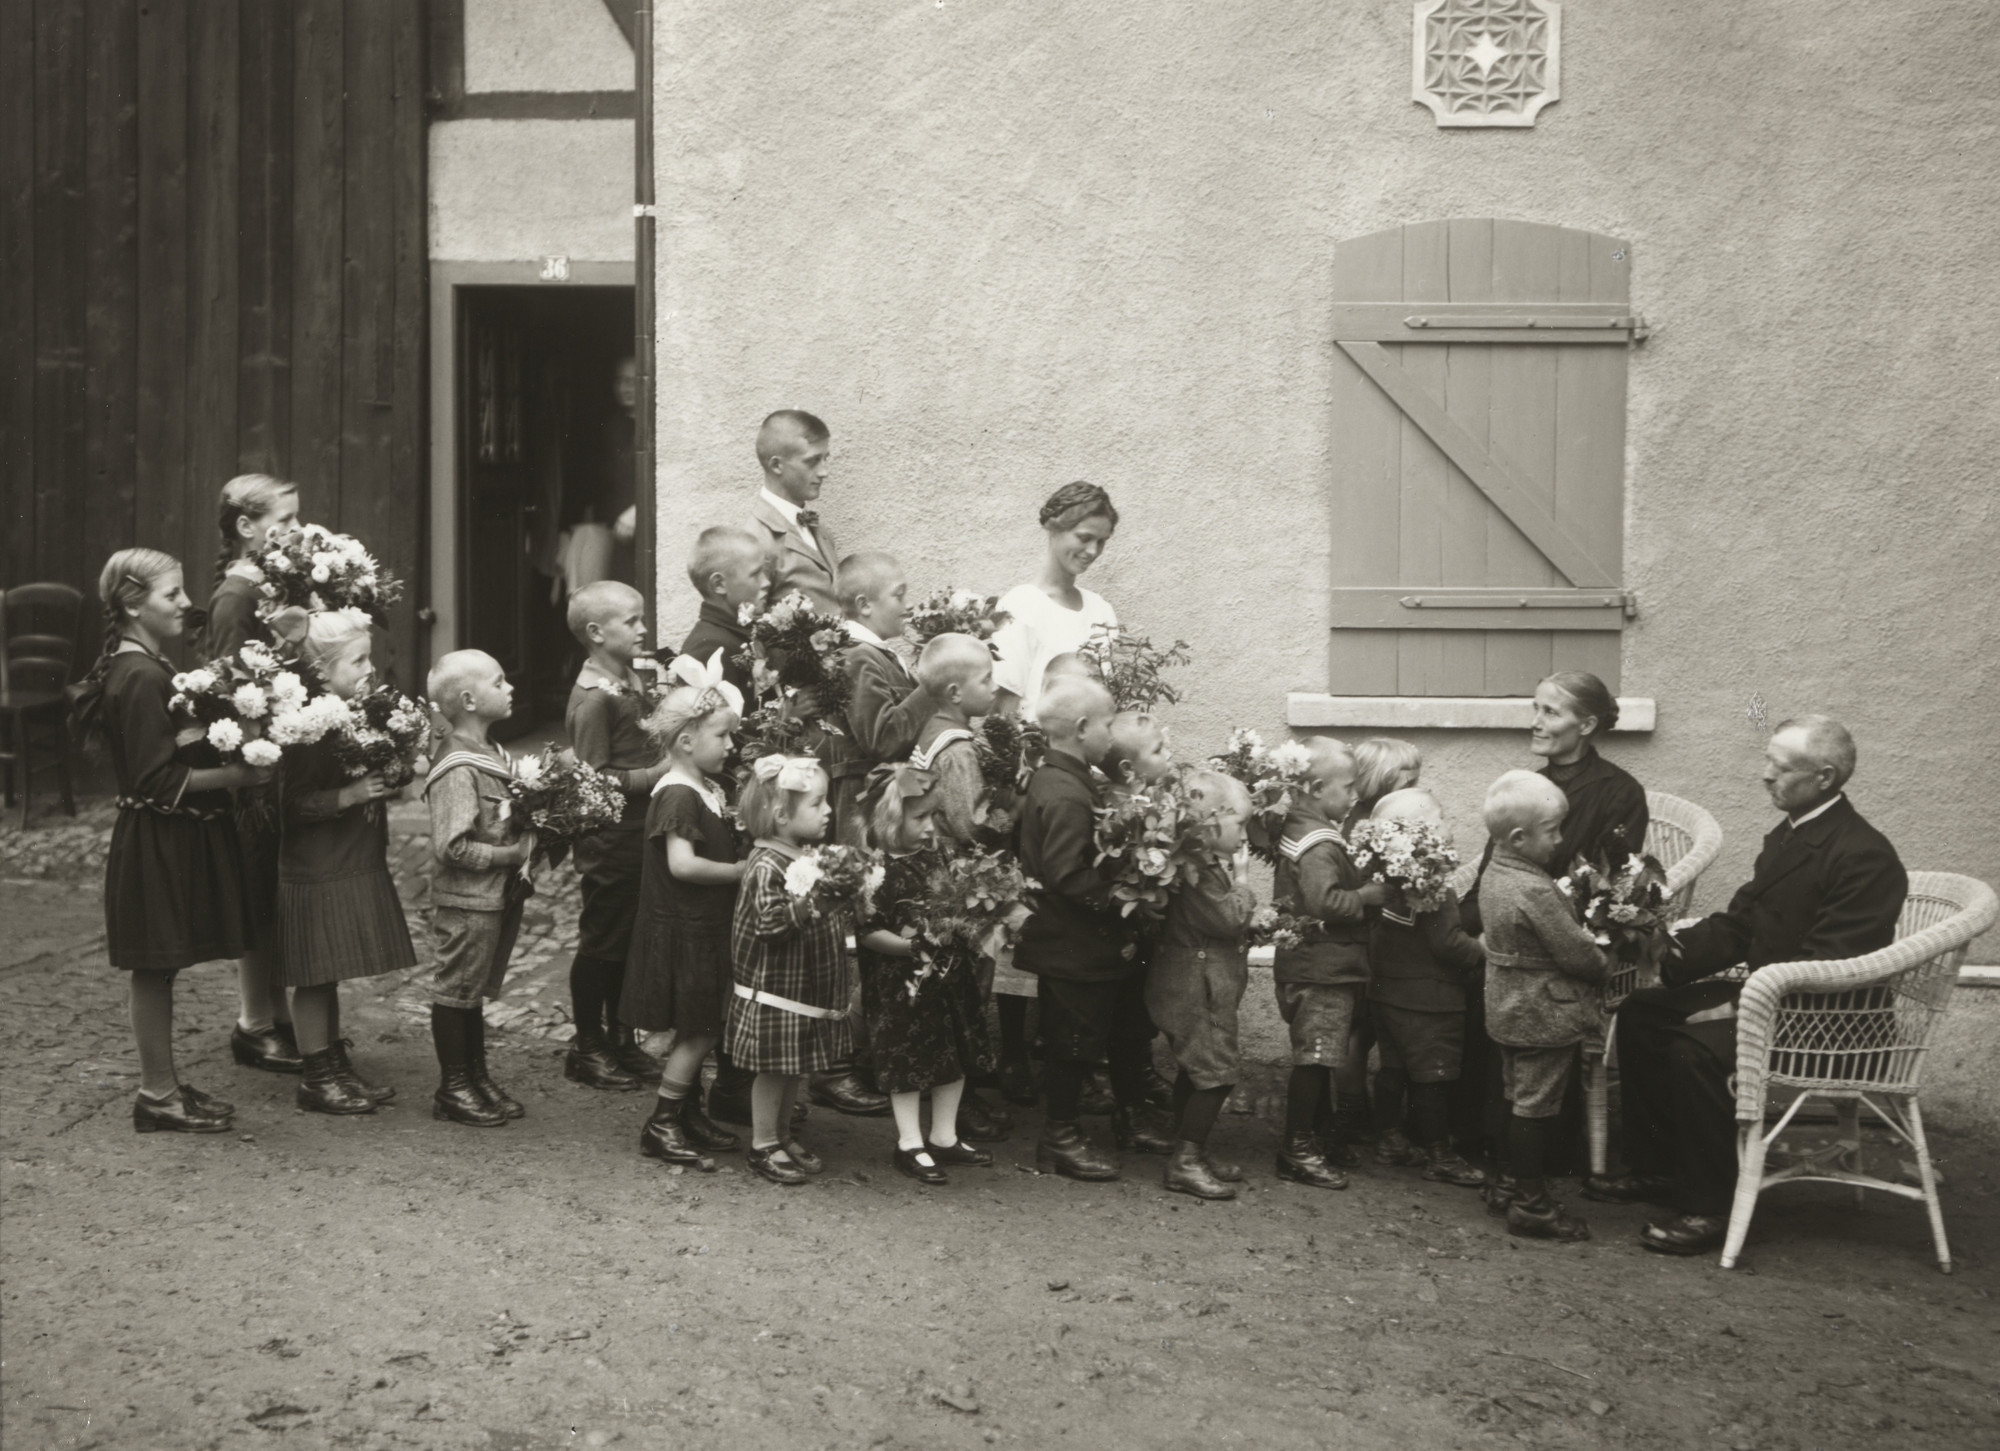 August Sander. Silver-Wedding Congratulations. 1932